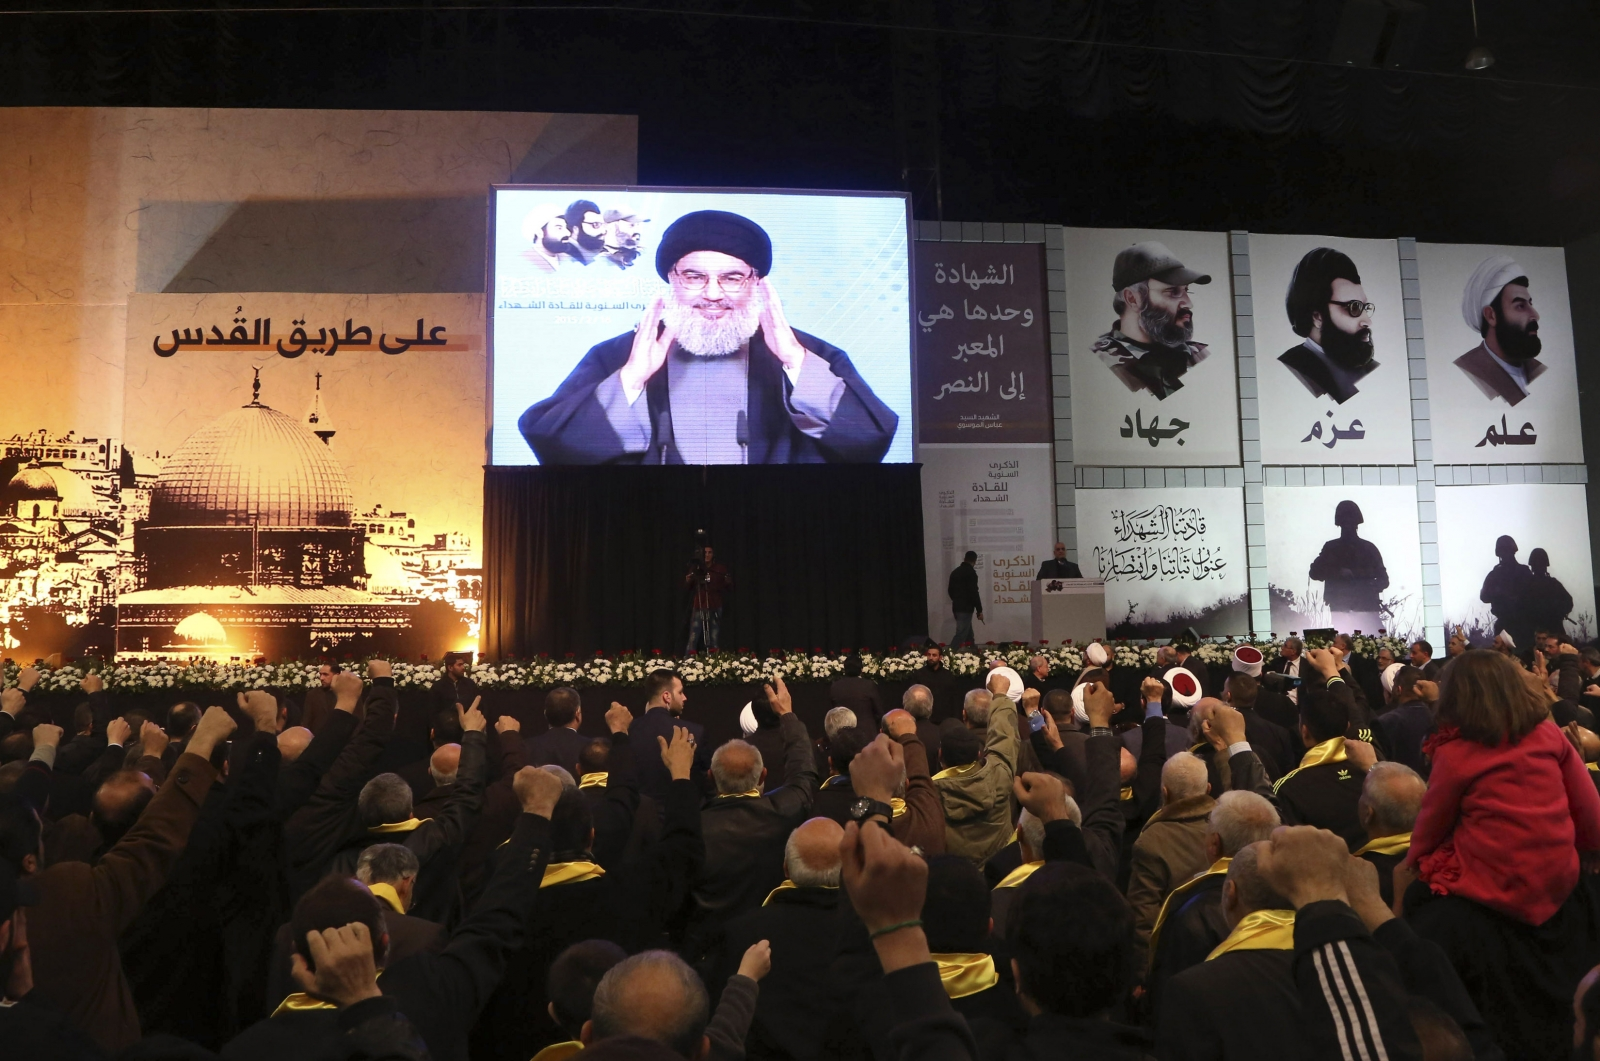 Lebanon's Hezbollah leader Sayyed Hassan Nasrallah greets his supporters through a giant screen during a rally commemorating the annual Hezbollah Martyrs' Leader Day in Beirut's southern suburbs February 16, 2015